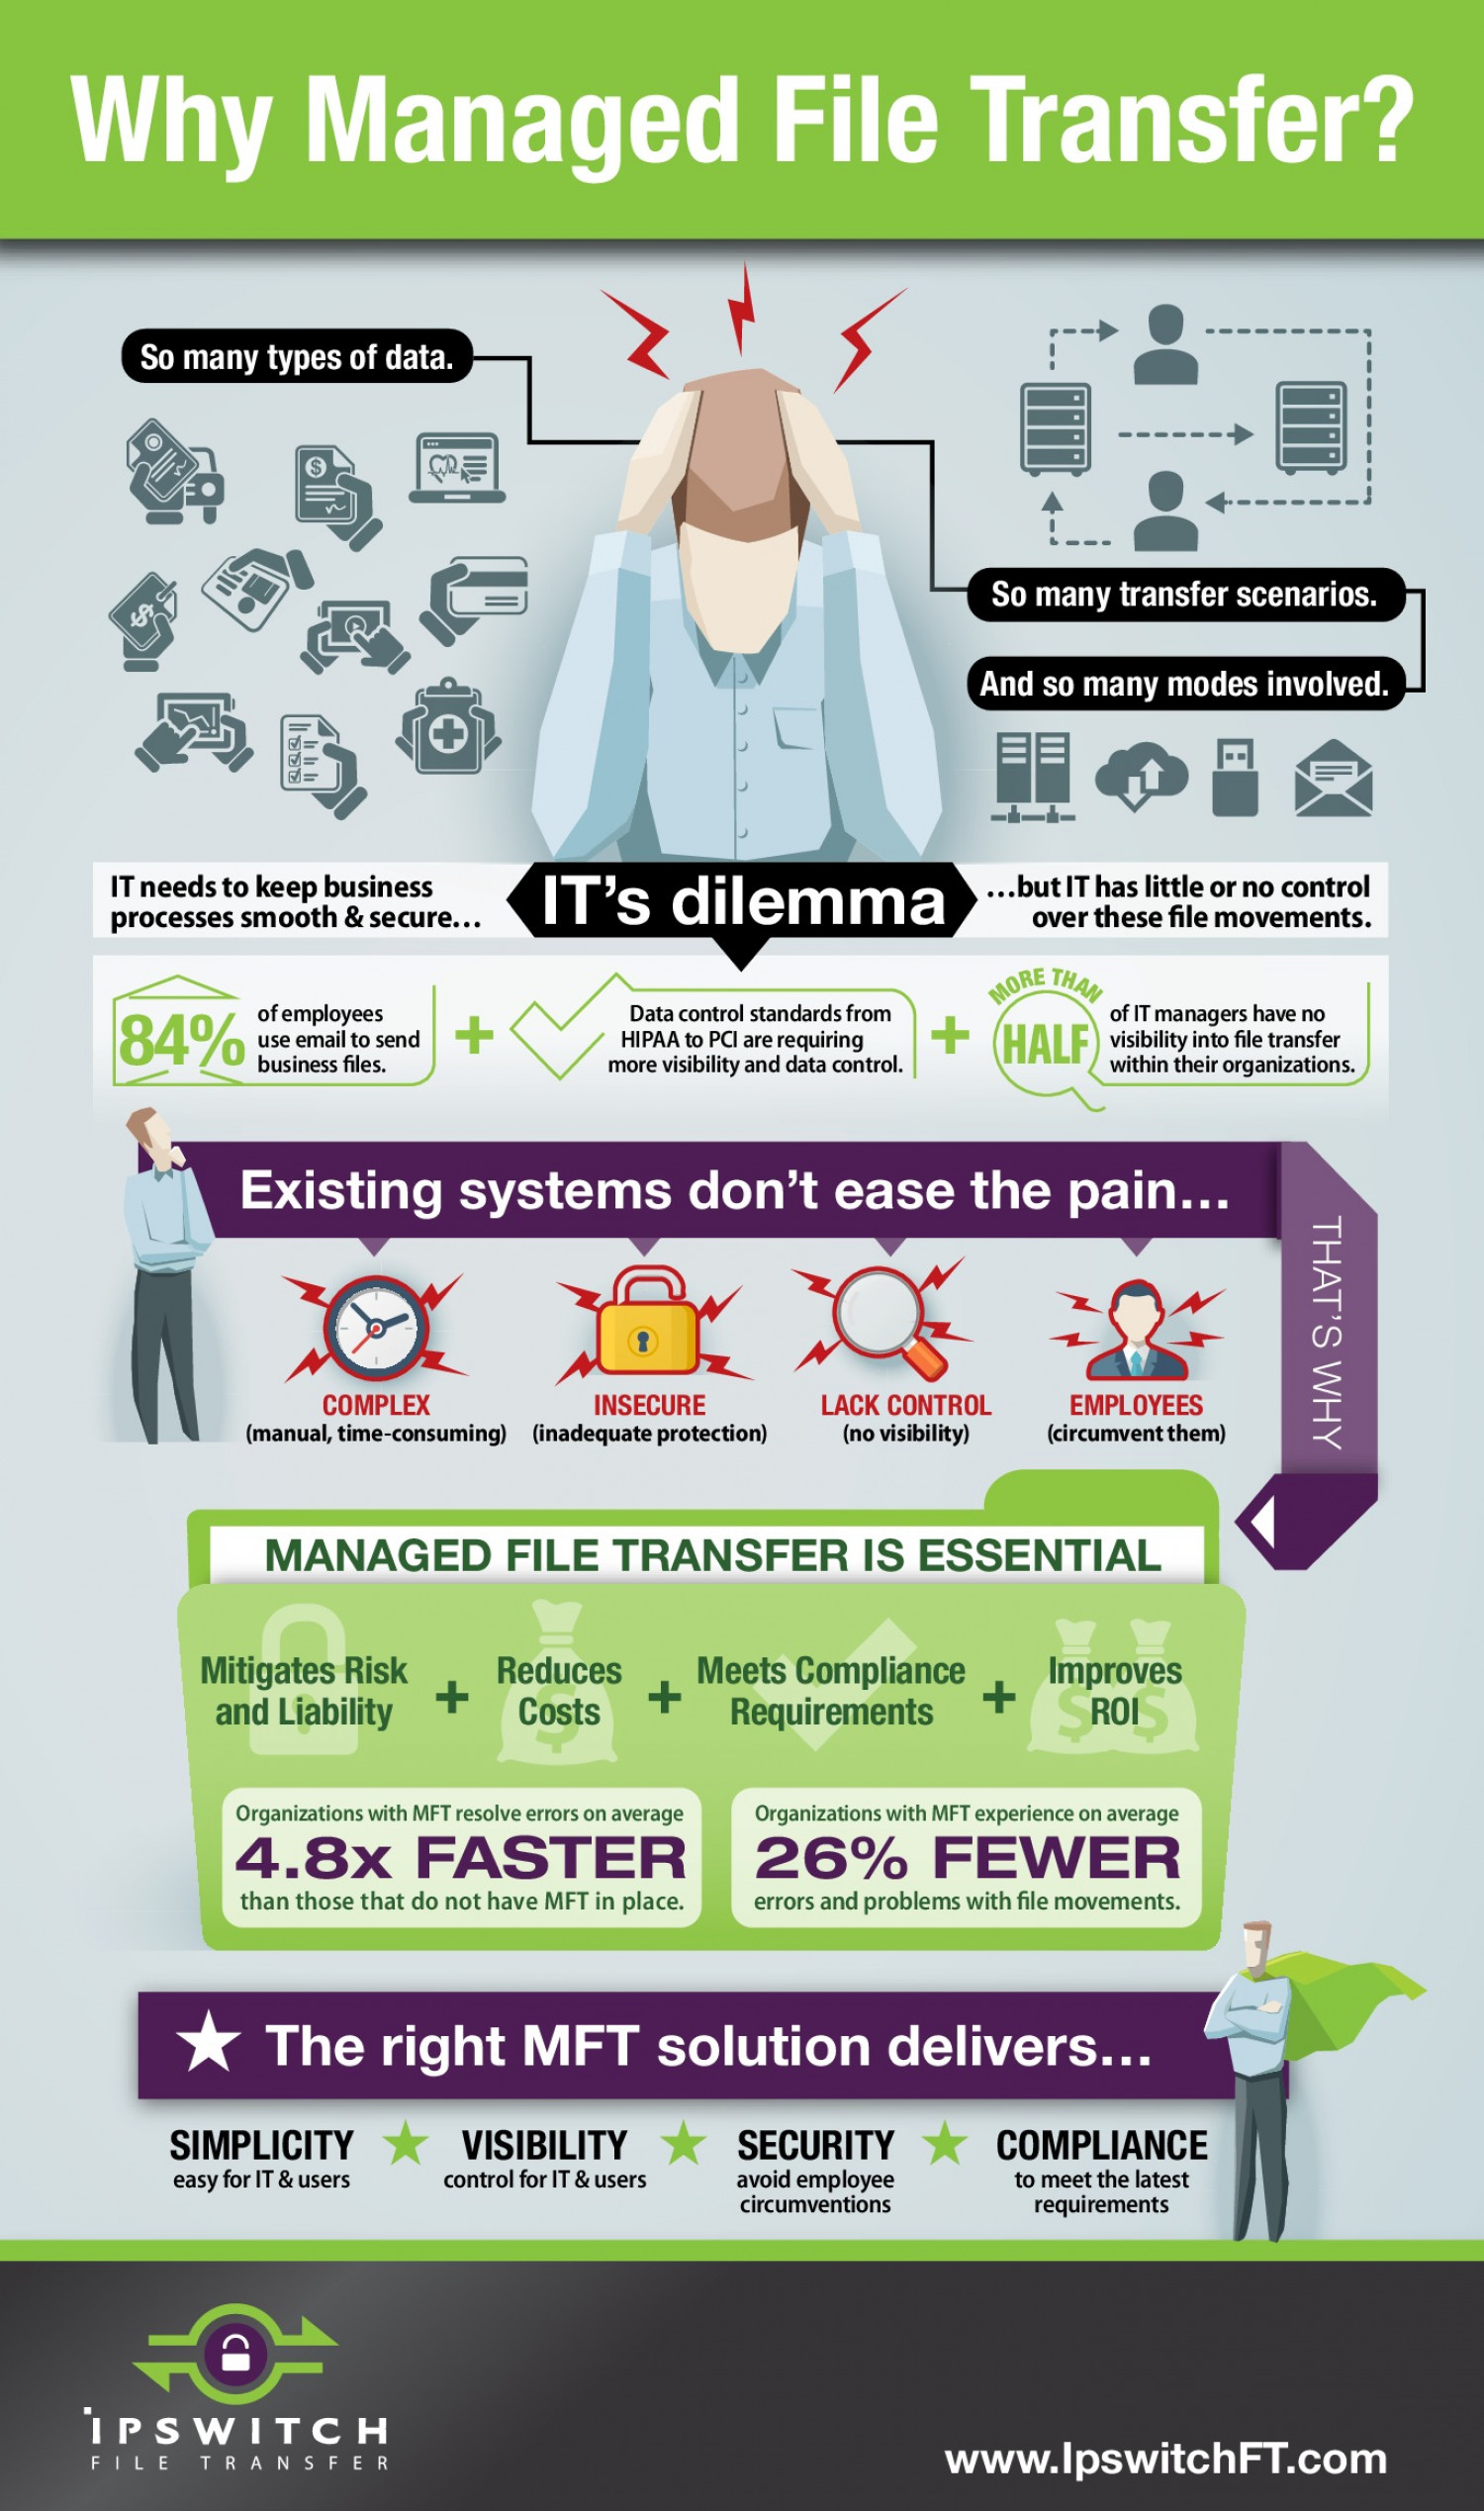 Why Managed File Transfer? Infographic